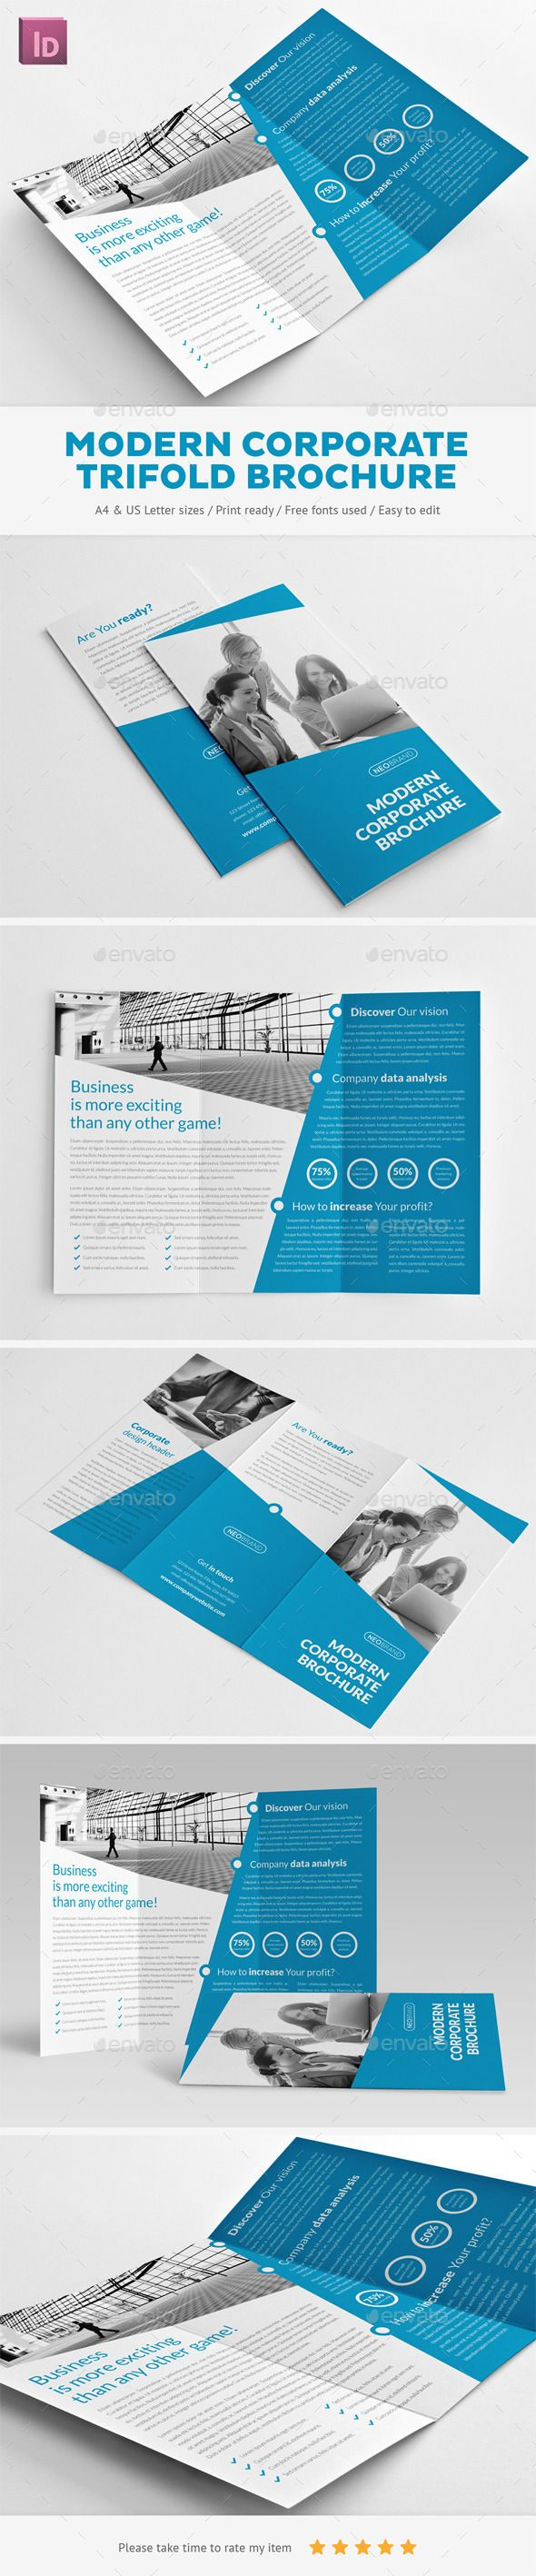 Highly editable trifold InDesign brochure template. Easy to customize with styles and swatches. Clean visual structure and professional typography. Download: http://graphicriver.net/item/modern-corporate-trifold-brochure/11017674?ref=ksioks